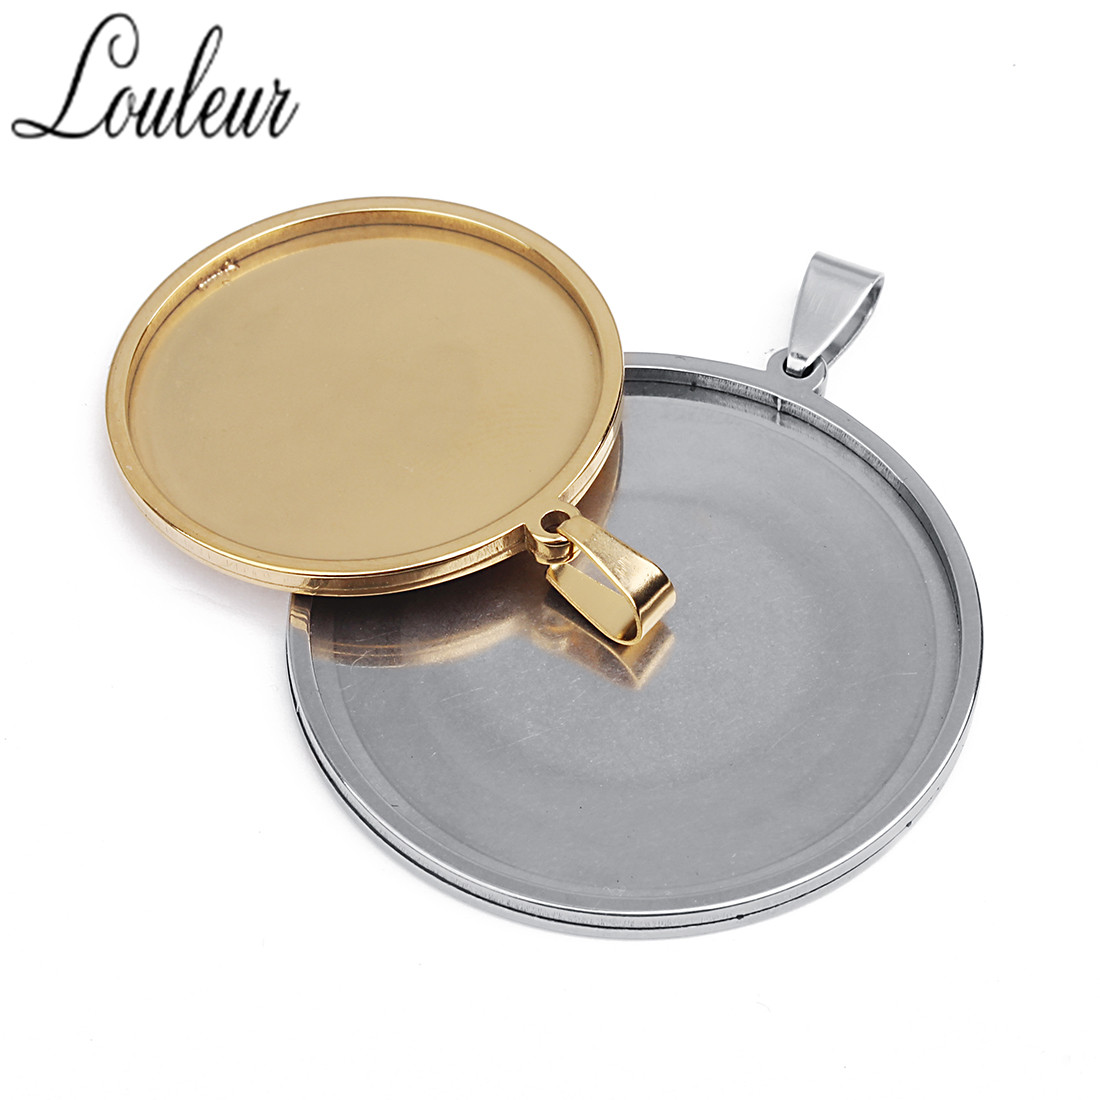 LOULEUR 5pcs/lot 20mm 25mm 30mm 35mm Stainless Steel Cabochon Cameo Base Tray Bezel Blank Fit Cabochon Necklace Jewelry Making